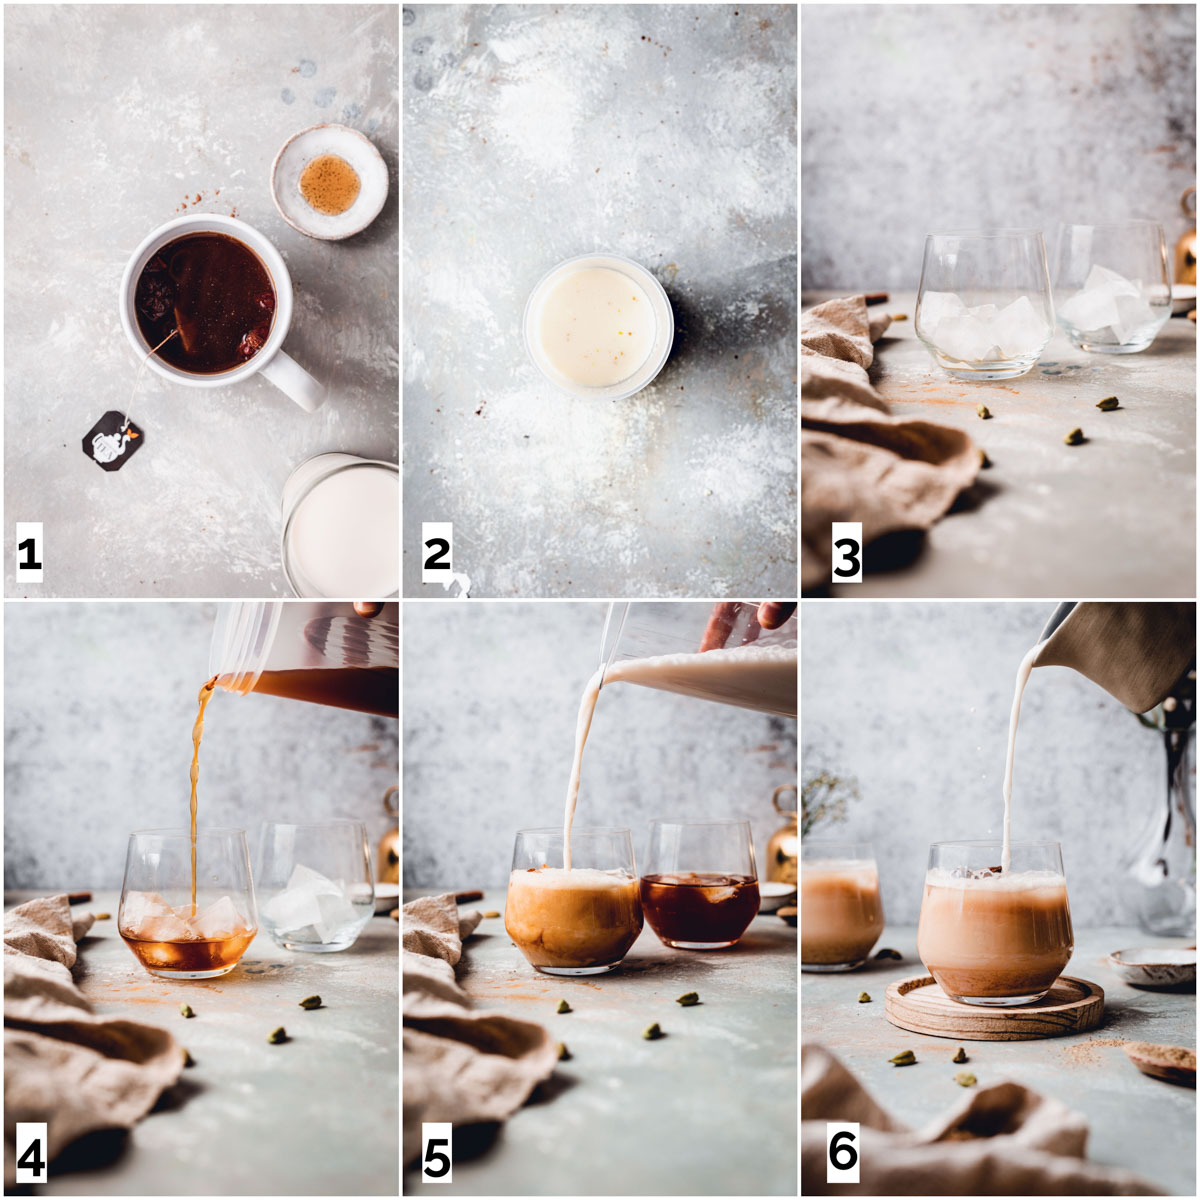 A collage of six images showing six stpes in making a vanilla chai latte.